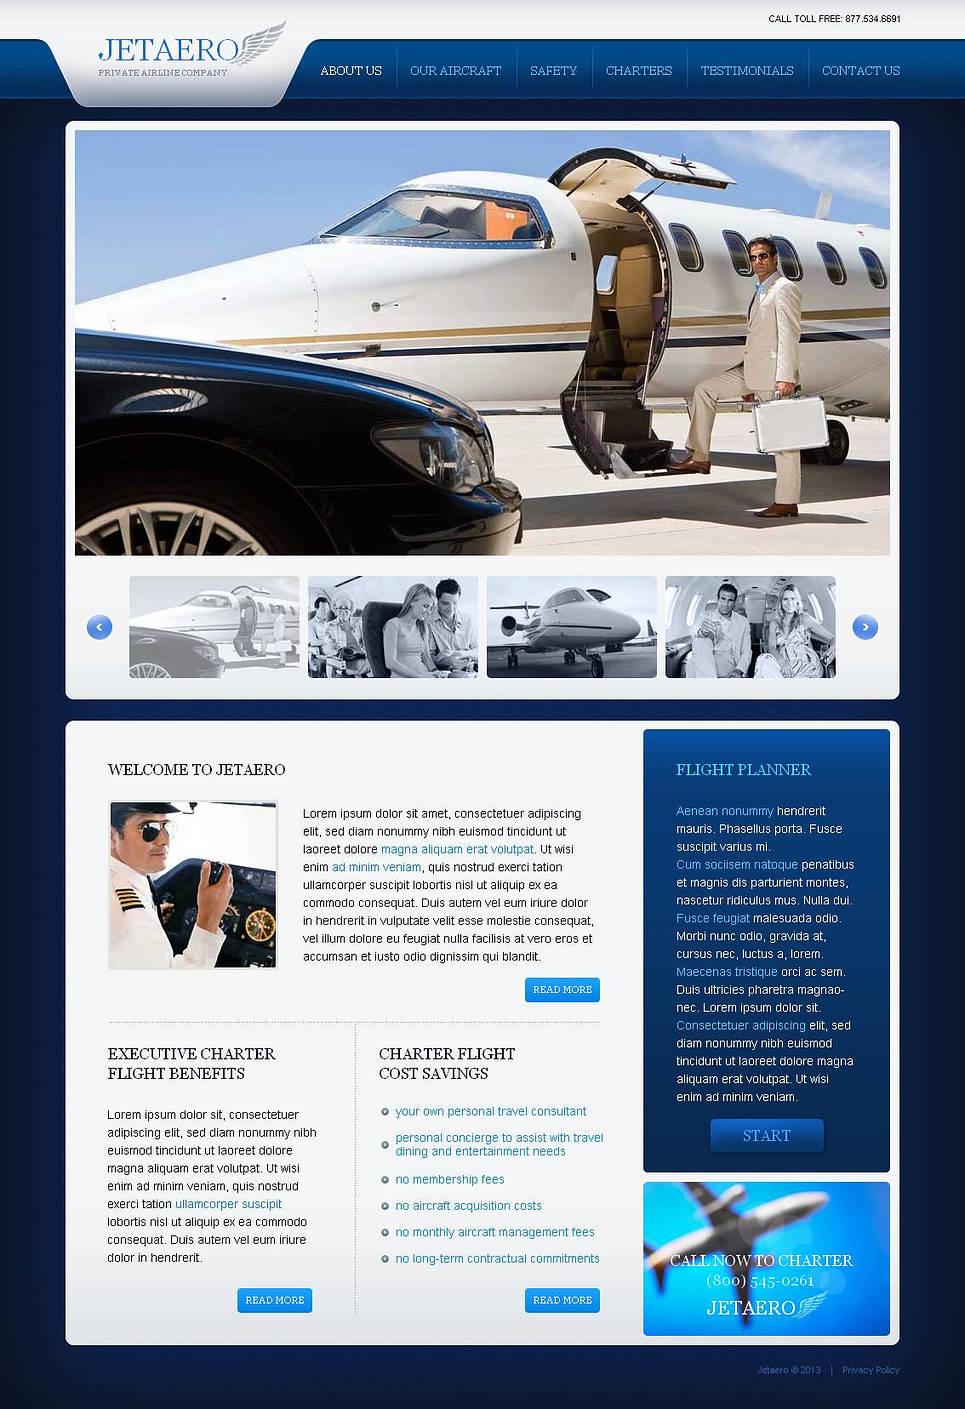 Airline Company Website Template with a Photo Gallery - image